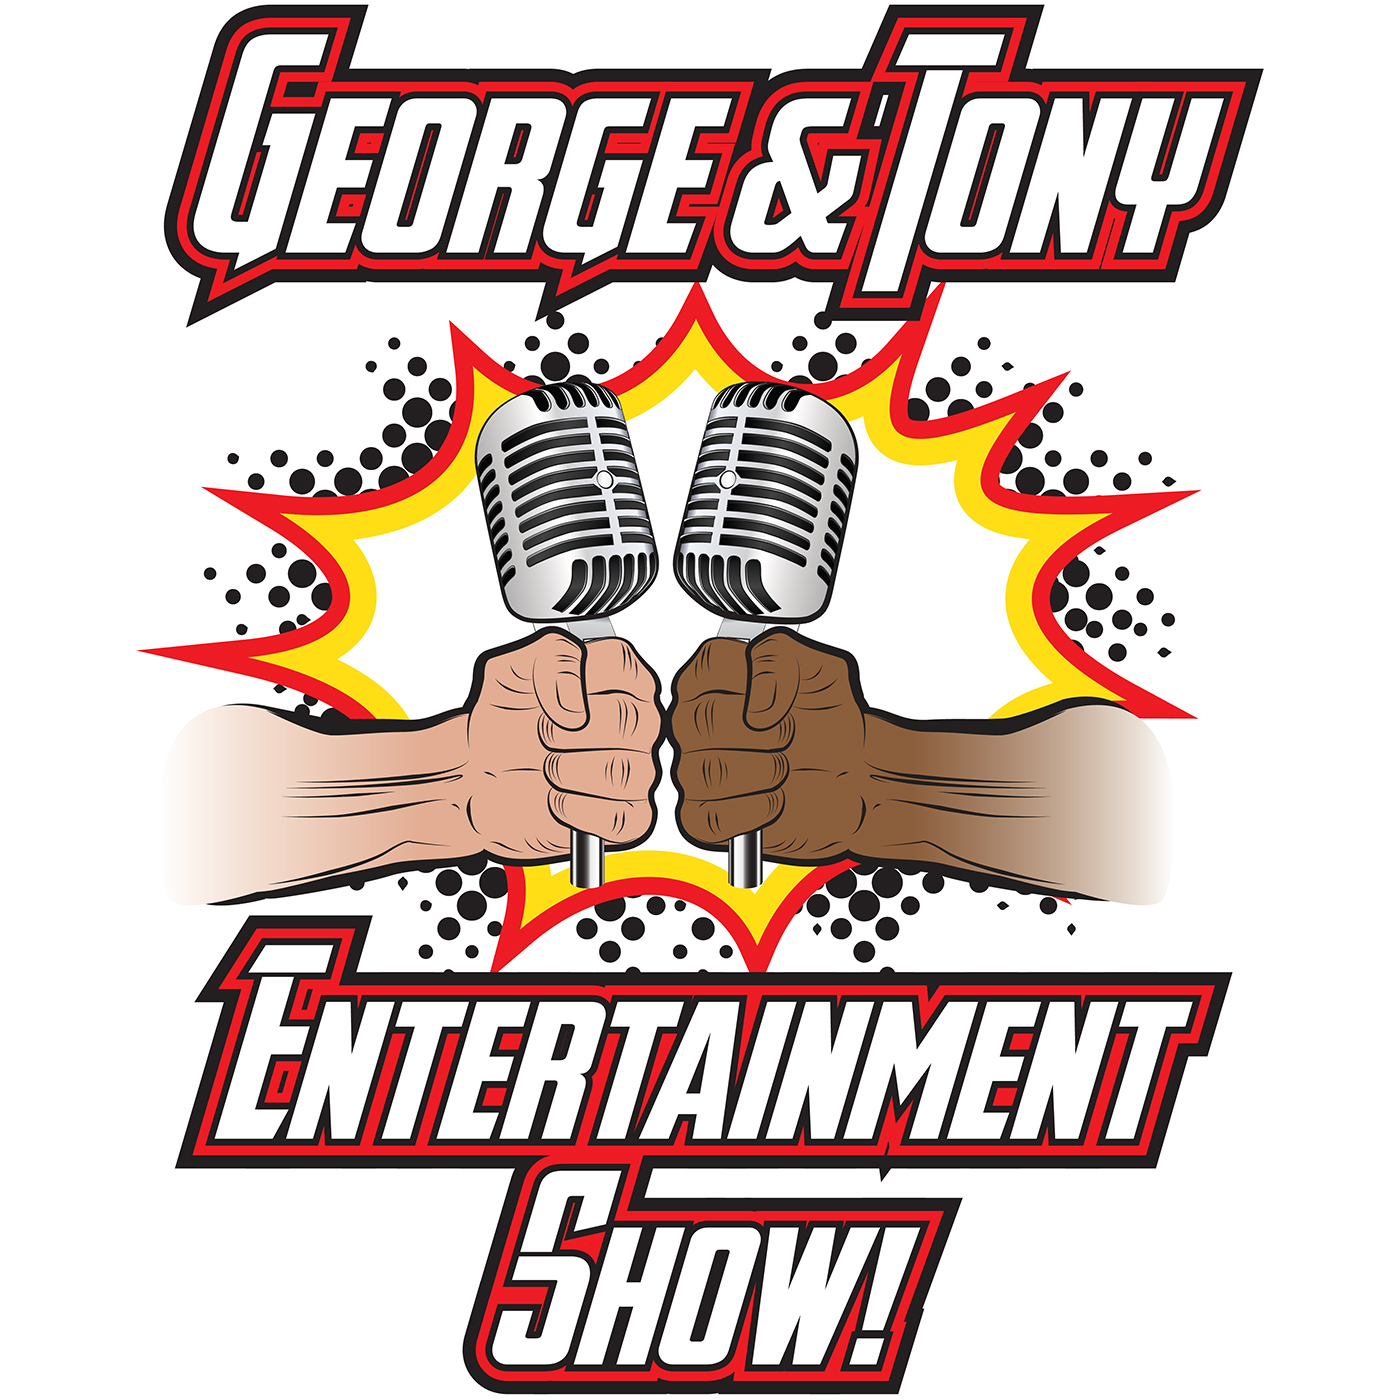 George and Tony Entertainment Show #22